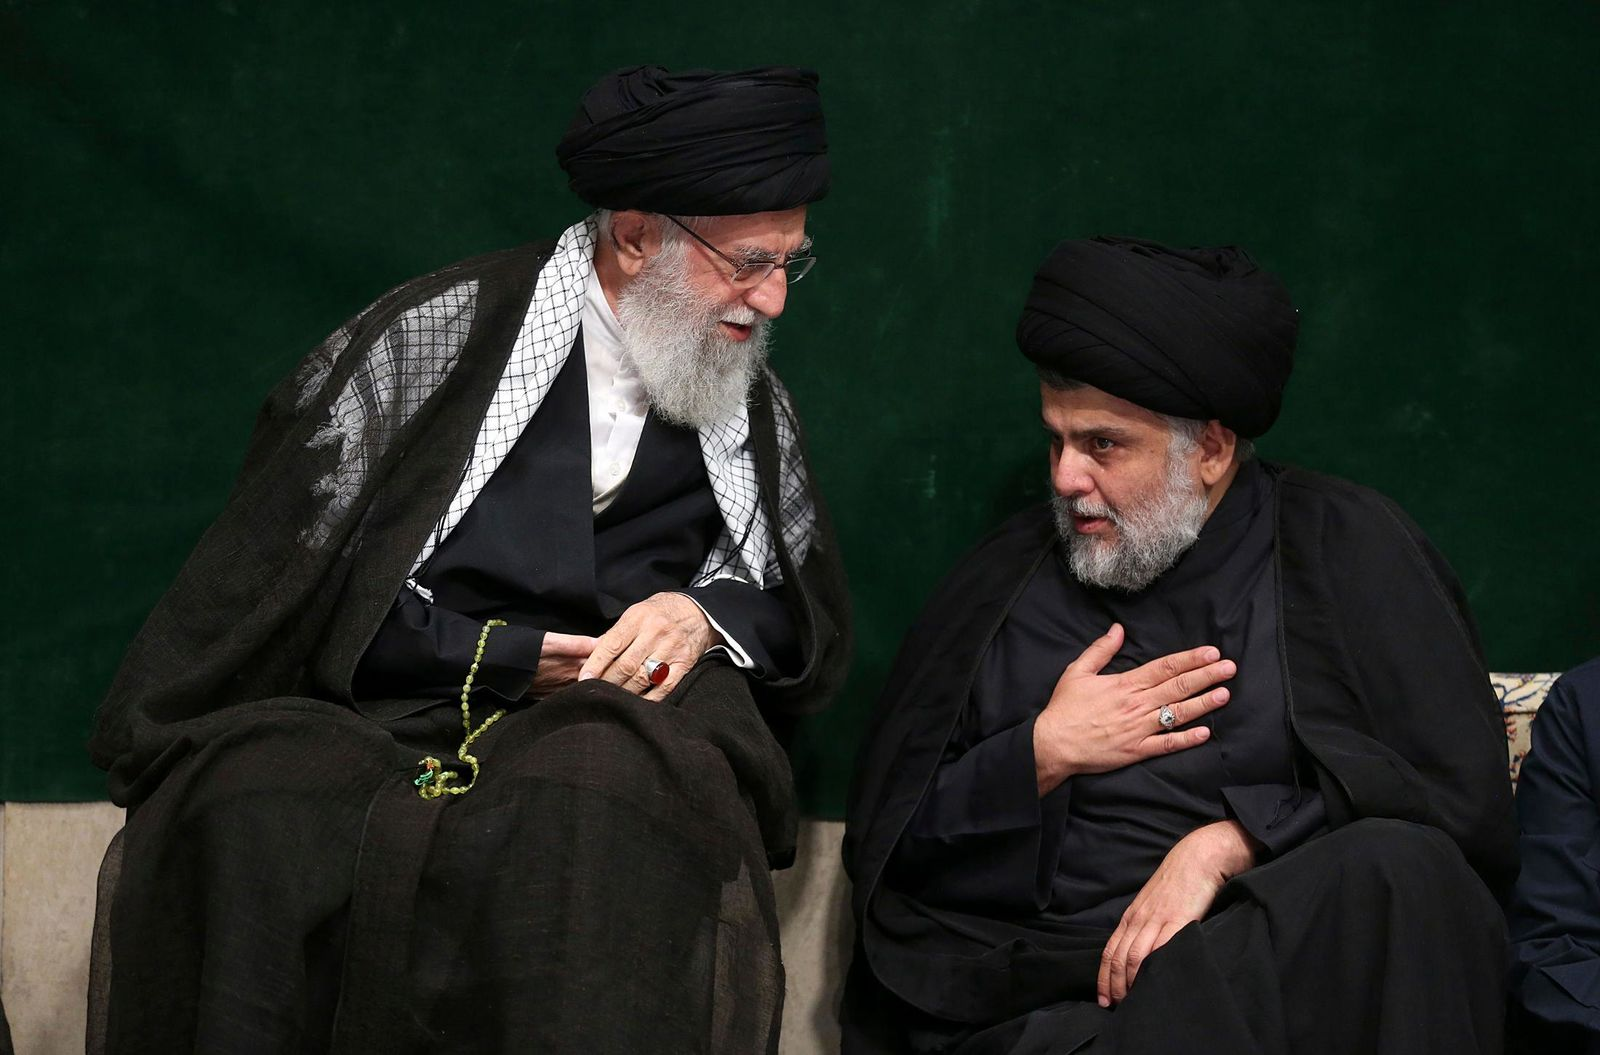 In this picture released by the official website of the office of the Iranian supreme leader, Supreme Leader Ayatollah Ali Khamenei, left, greets Iraqi Shiite cleric Muqtada al-Sadr during a mourning ceremony commemorating Ashoura, the death anniversary of Hussein, the grandson of Prophet Muhammad, in Tehran, Iran. (Office of the Iranian Supreme Leader via AP)